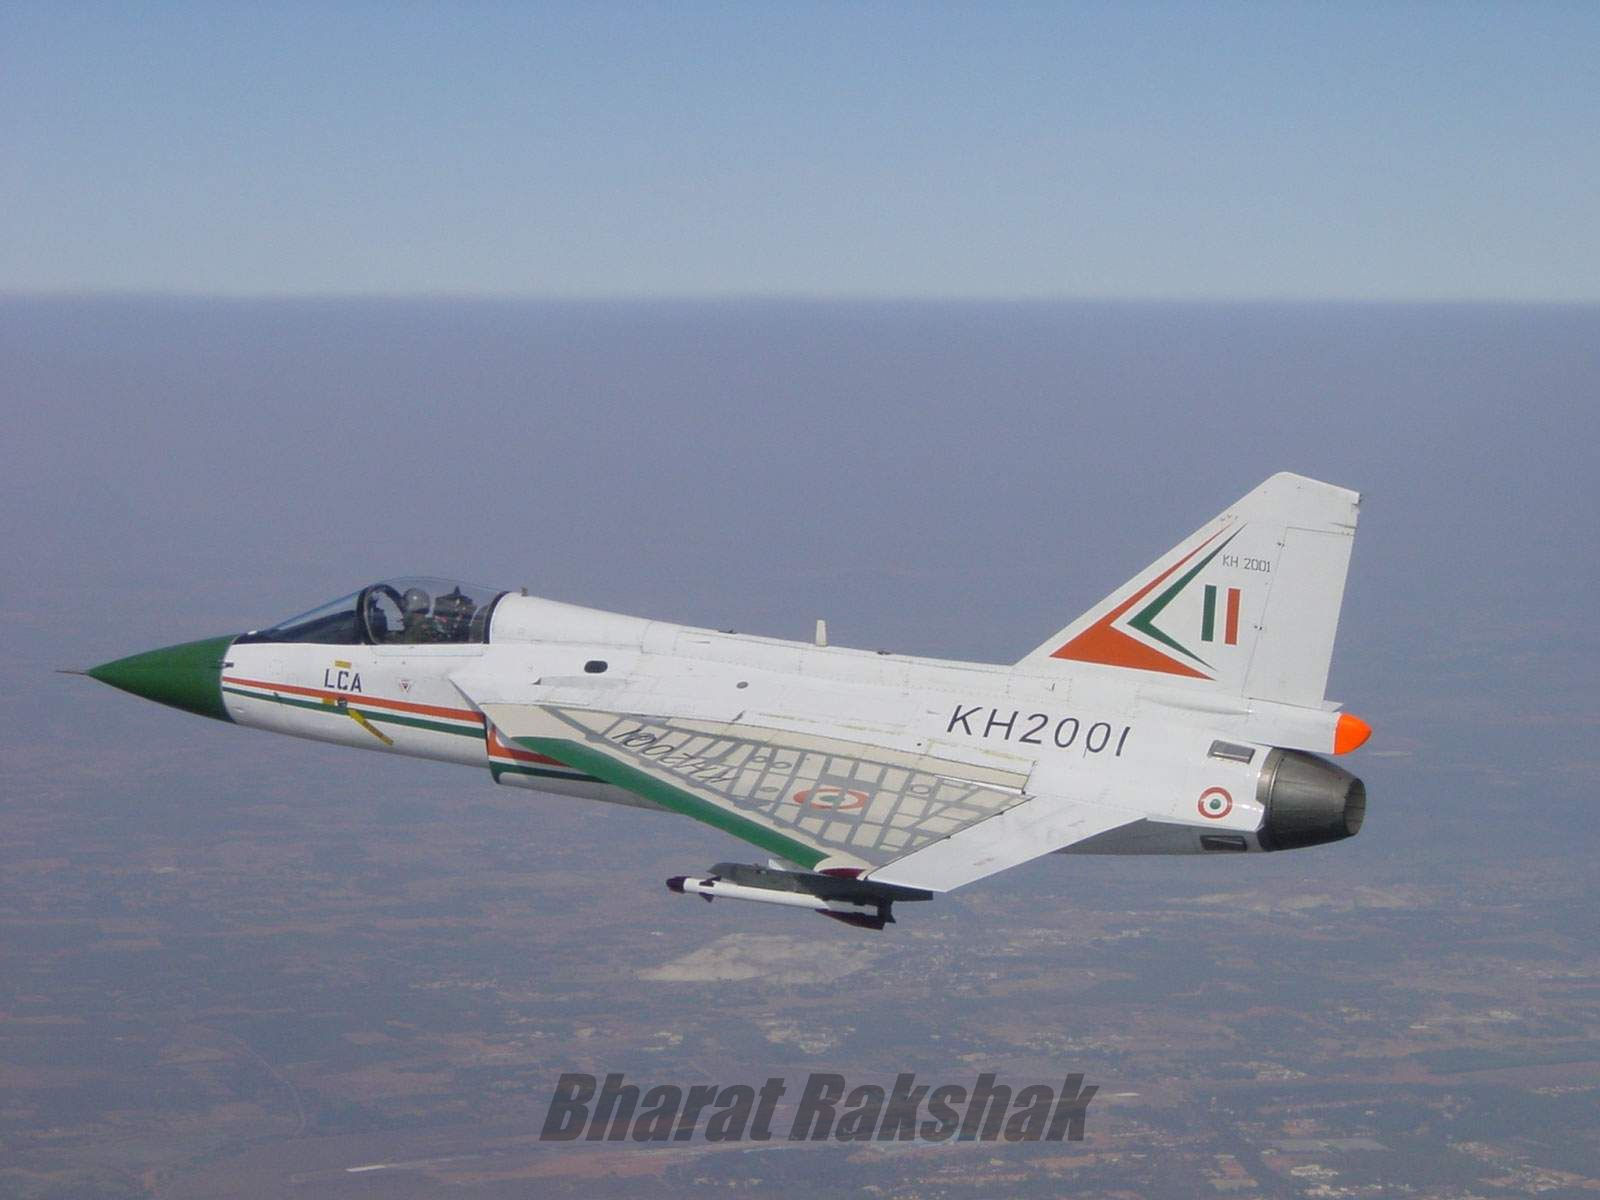 KH2001 during its fourth flight, on February 9th, at Aero India 2001